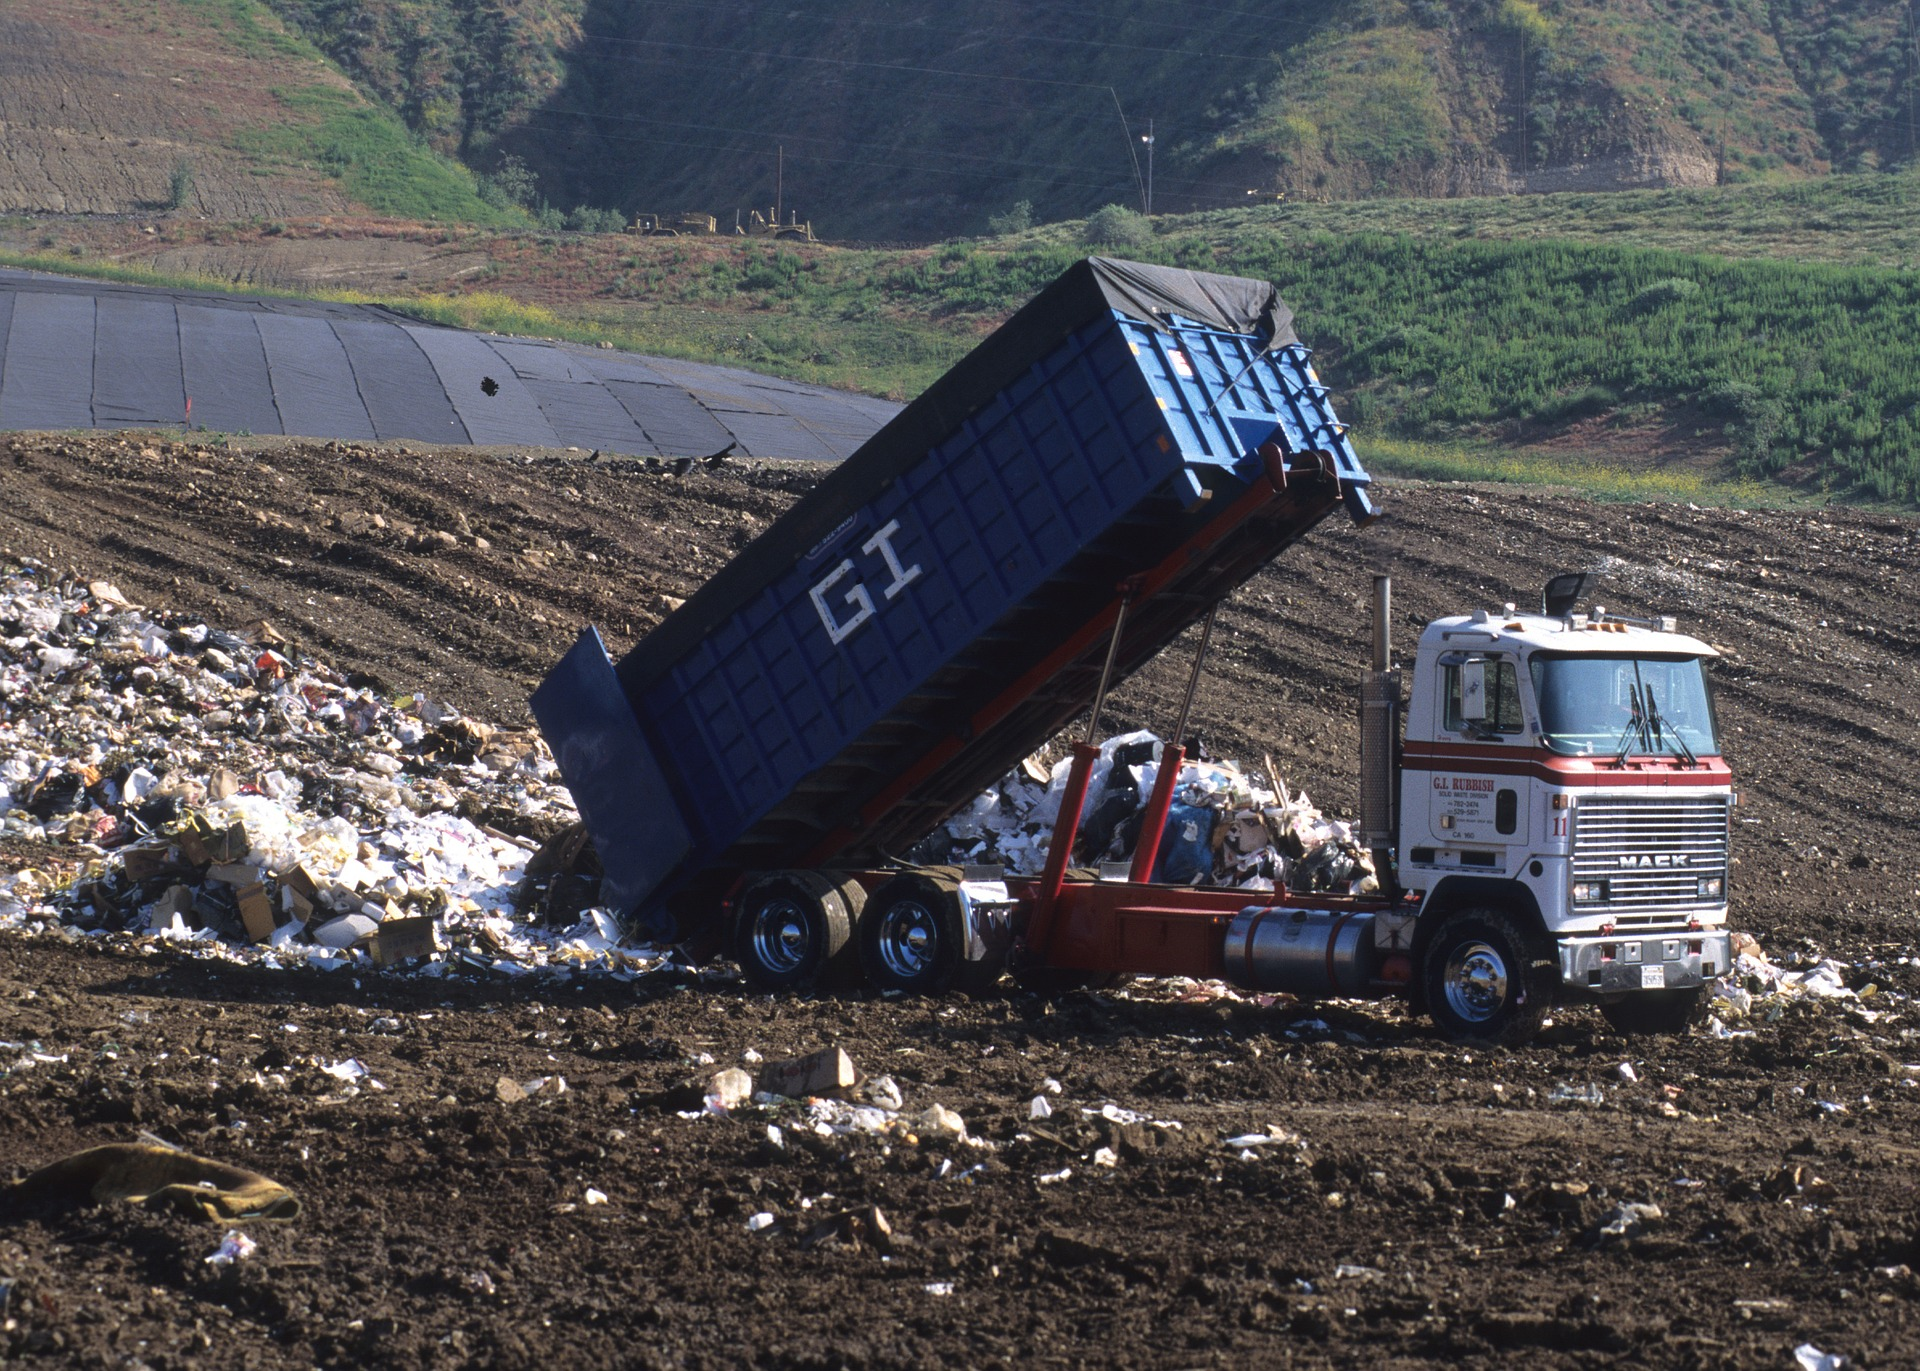 Mexico is Latin America's largest producer of waste rubbish